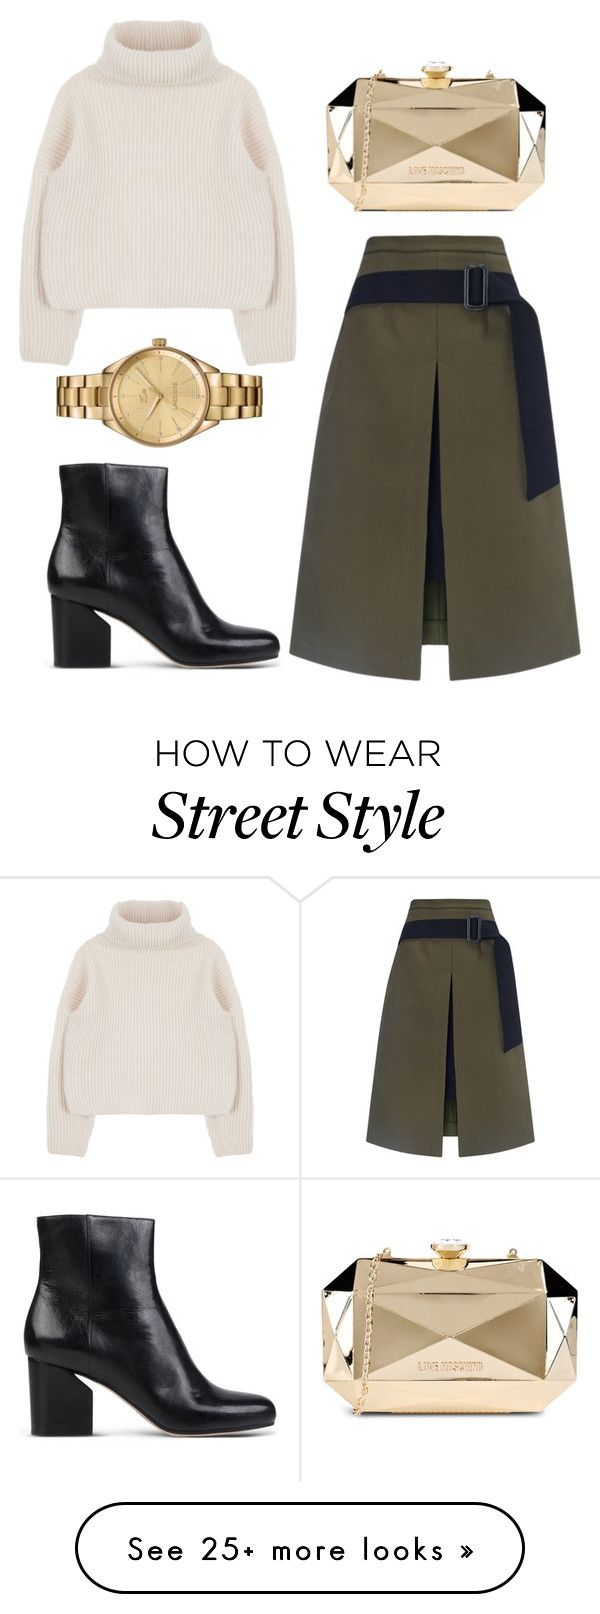 """254"" by fishbowlplacebo on Polyvore featuring EUDON CHOI, Maison Margiela, Lacoste and Love Moschino"